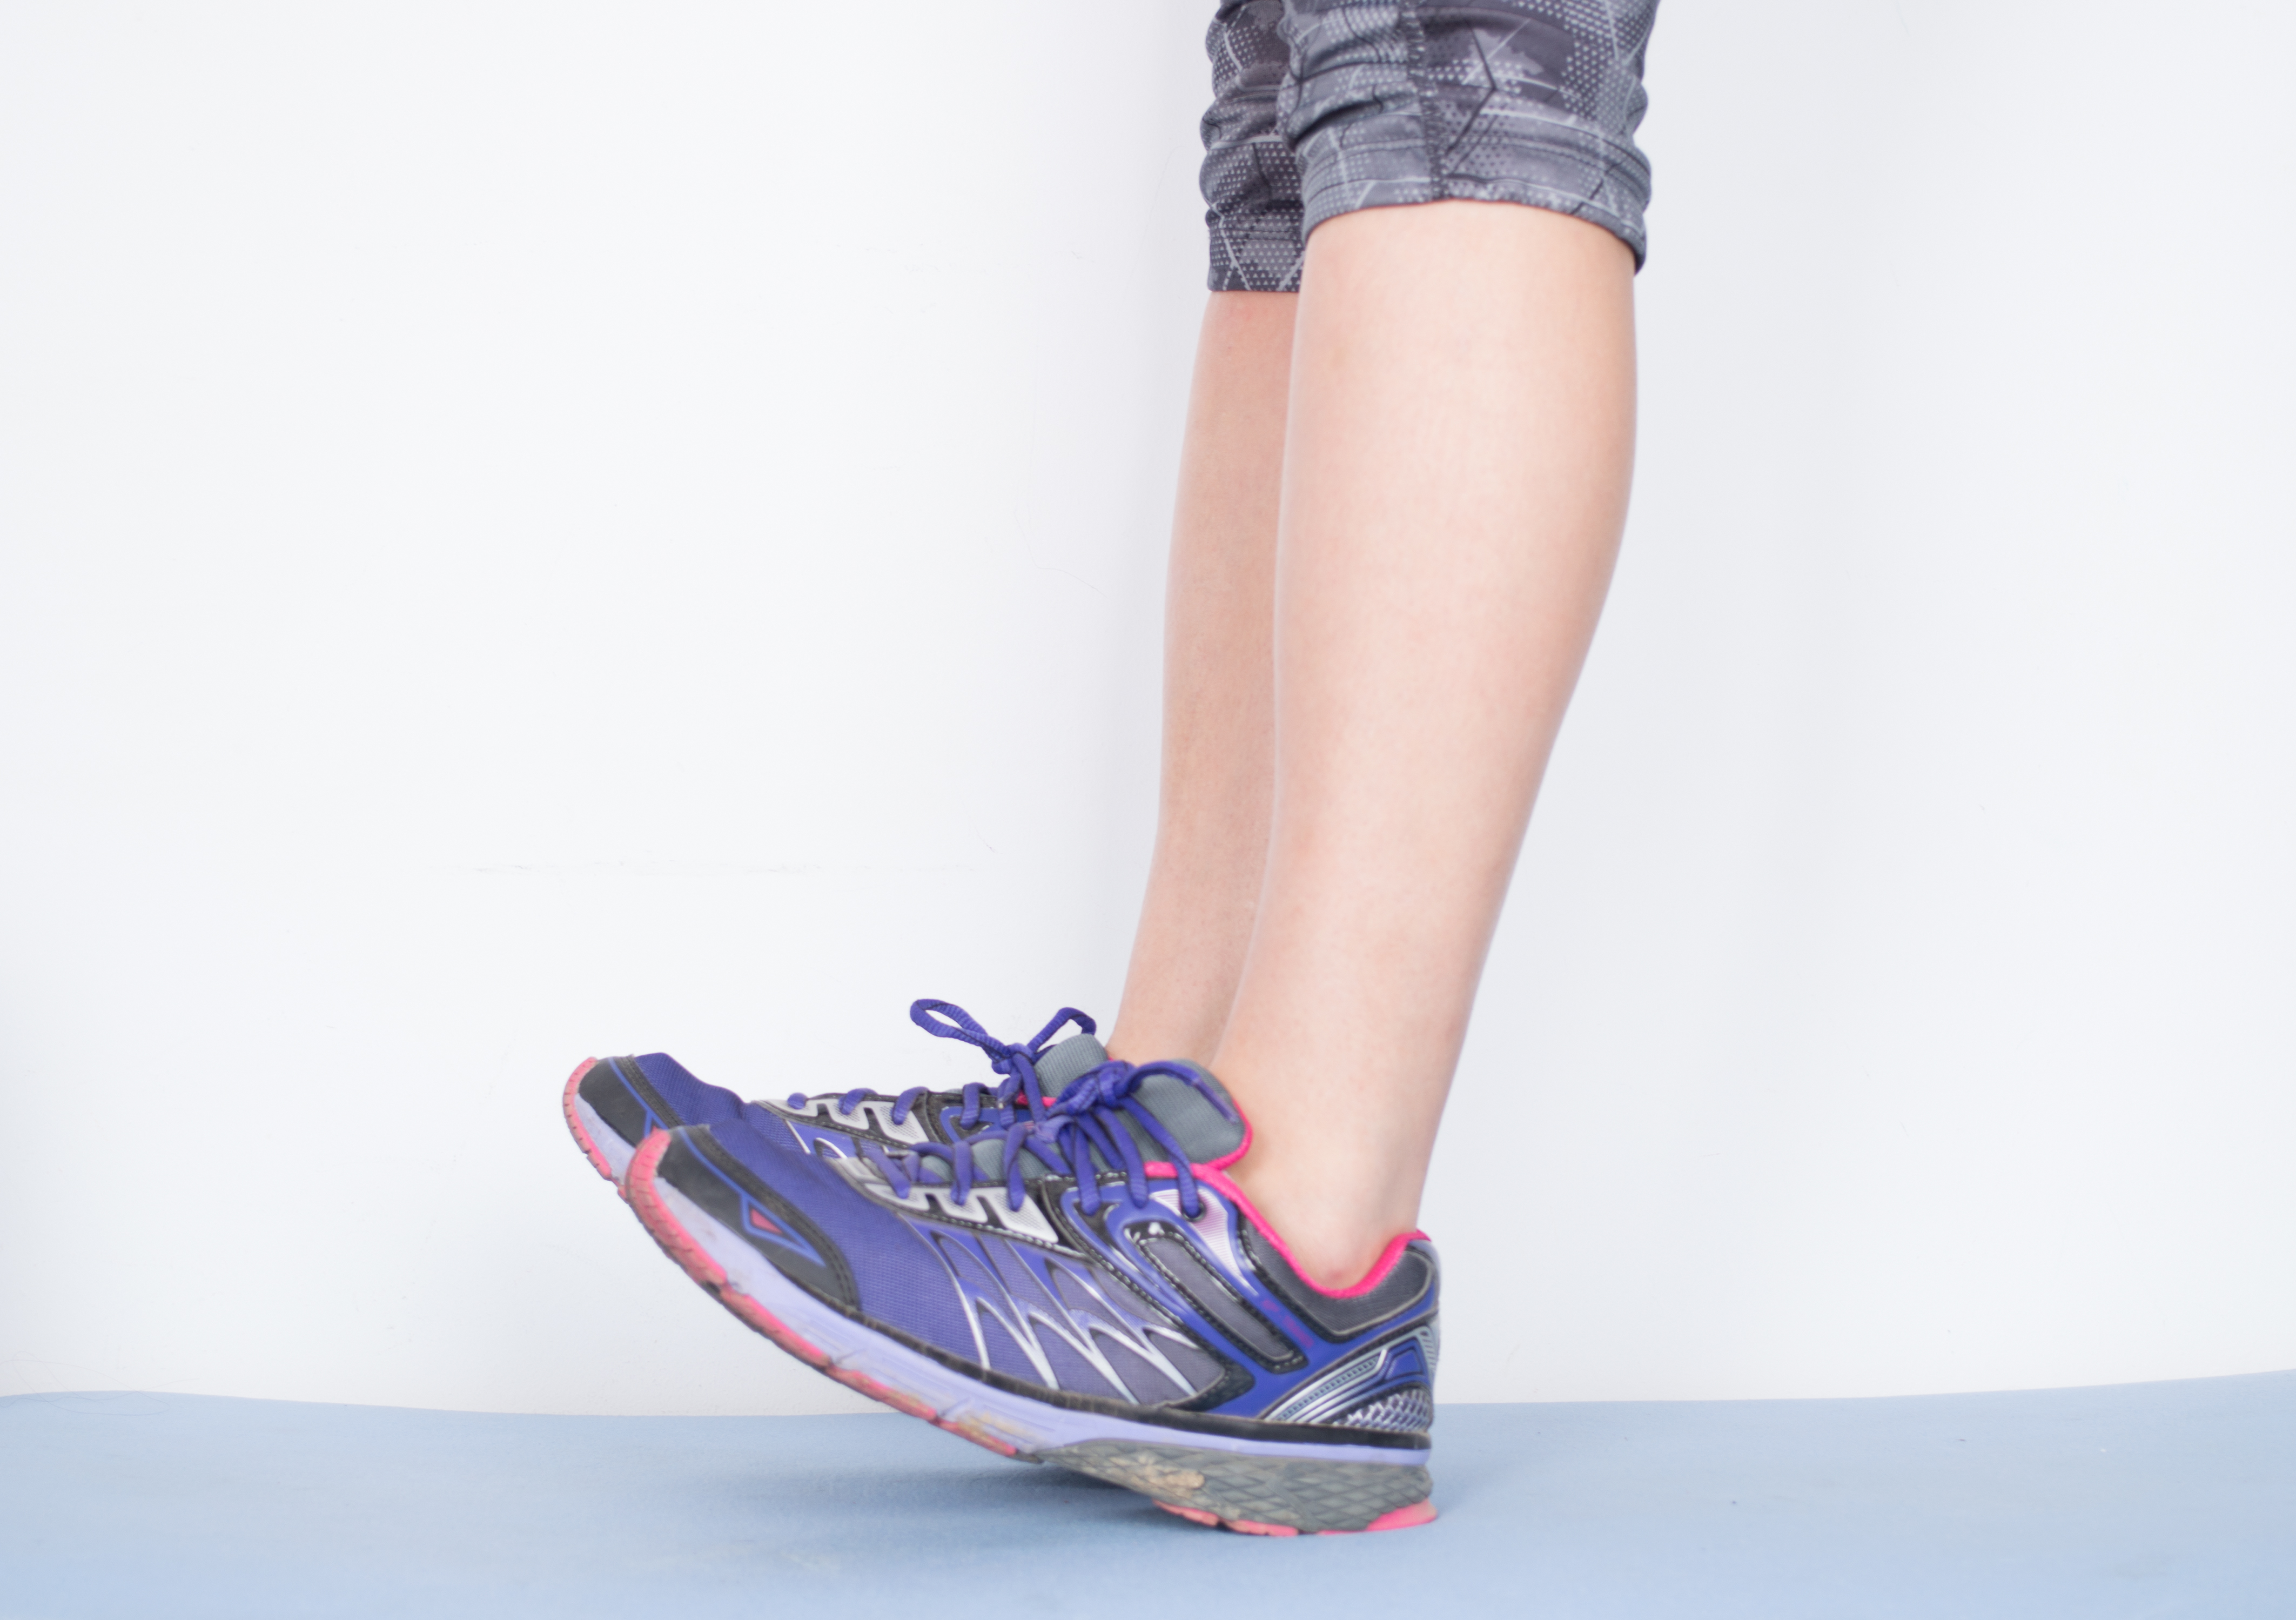 How to Treat Shin Splints by Stretching with Pictures